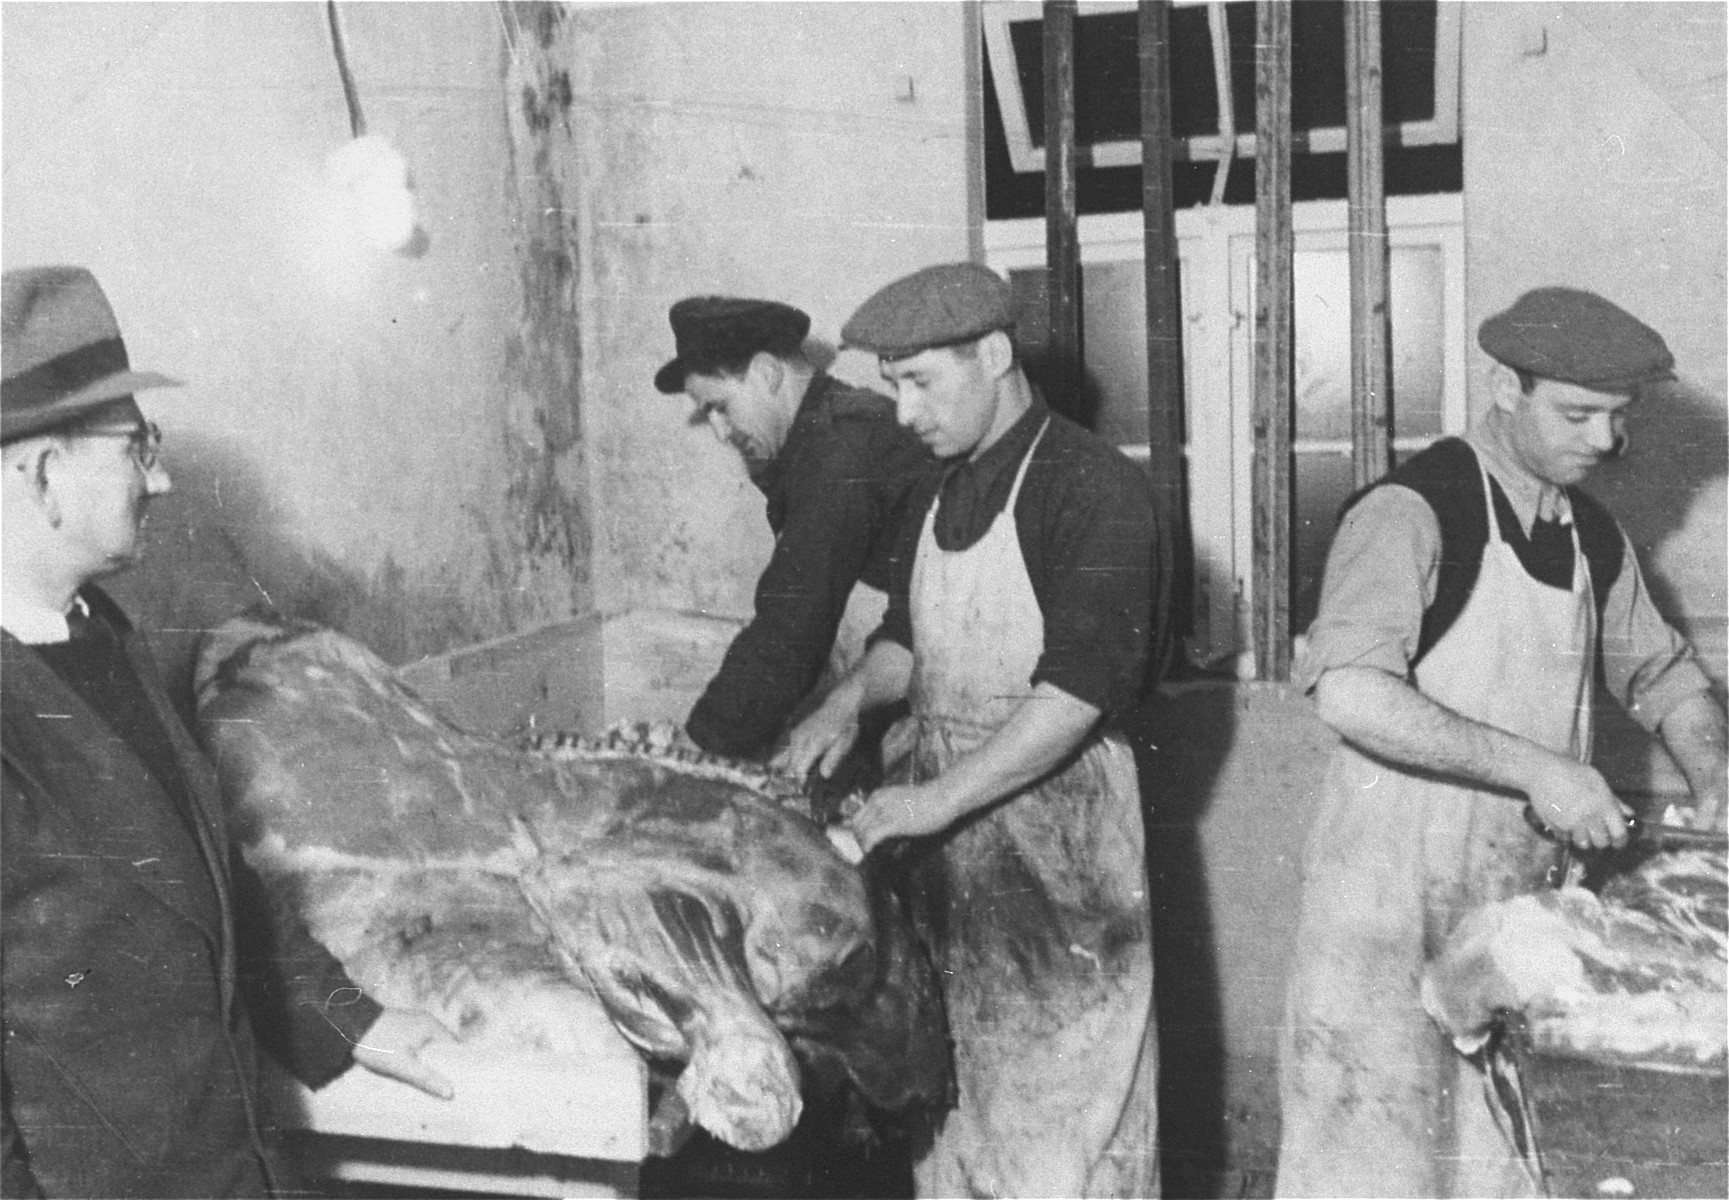 Butchers carve meat in the Zeilsheim displaced persons' camp.